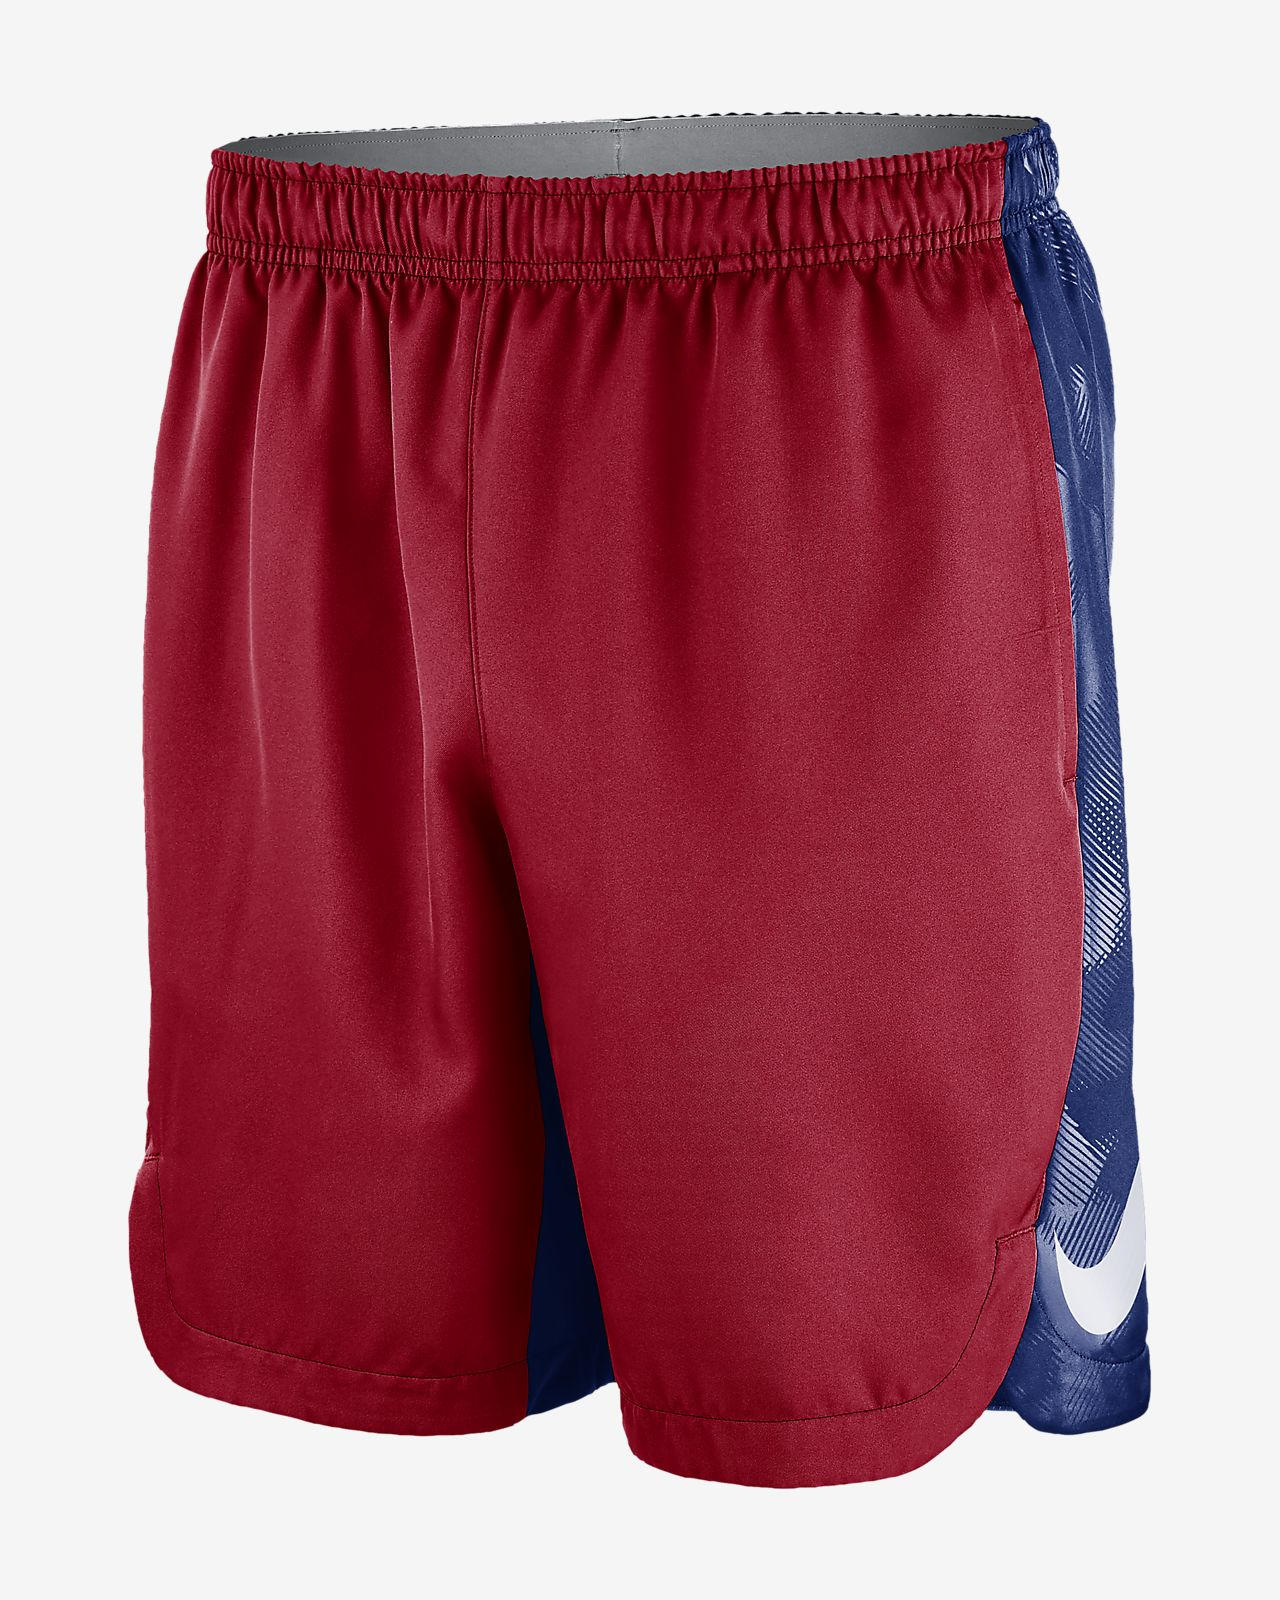 Nike Dri-FIT (MLB Phillies) Men's Shorts